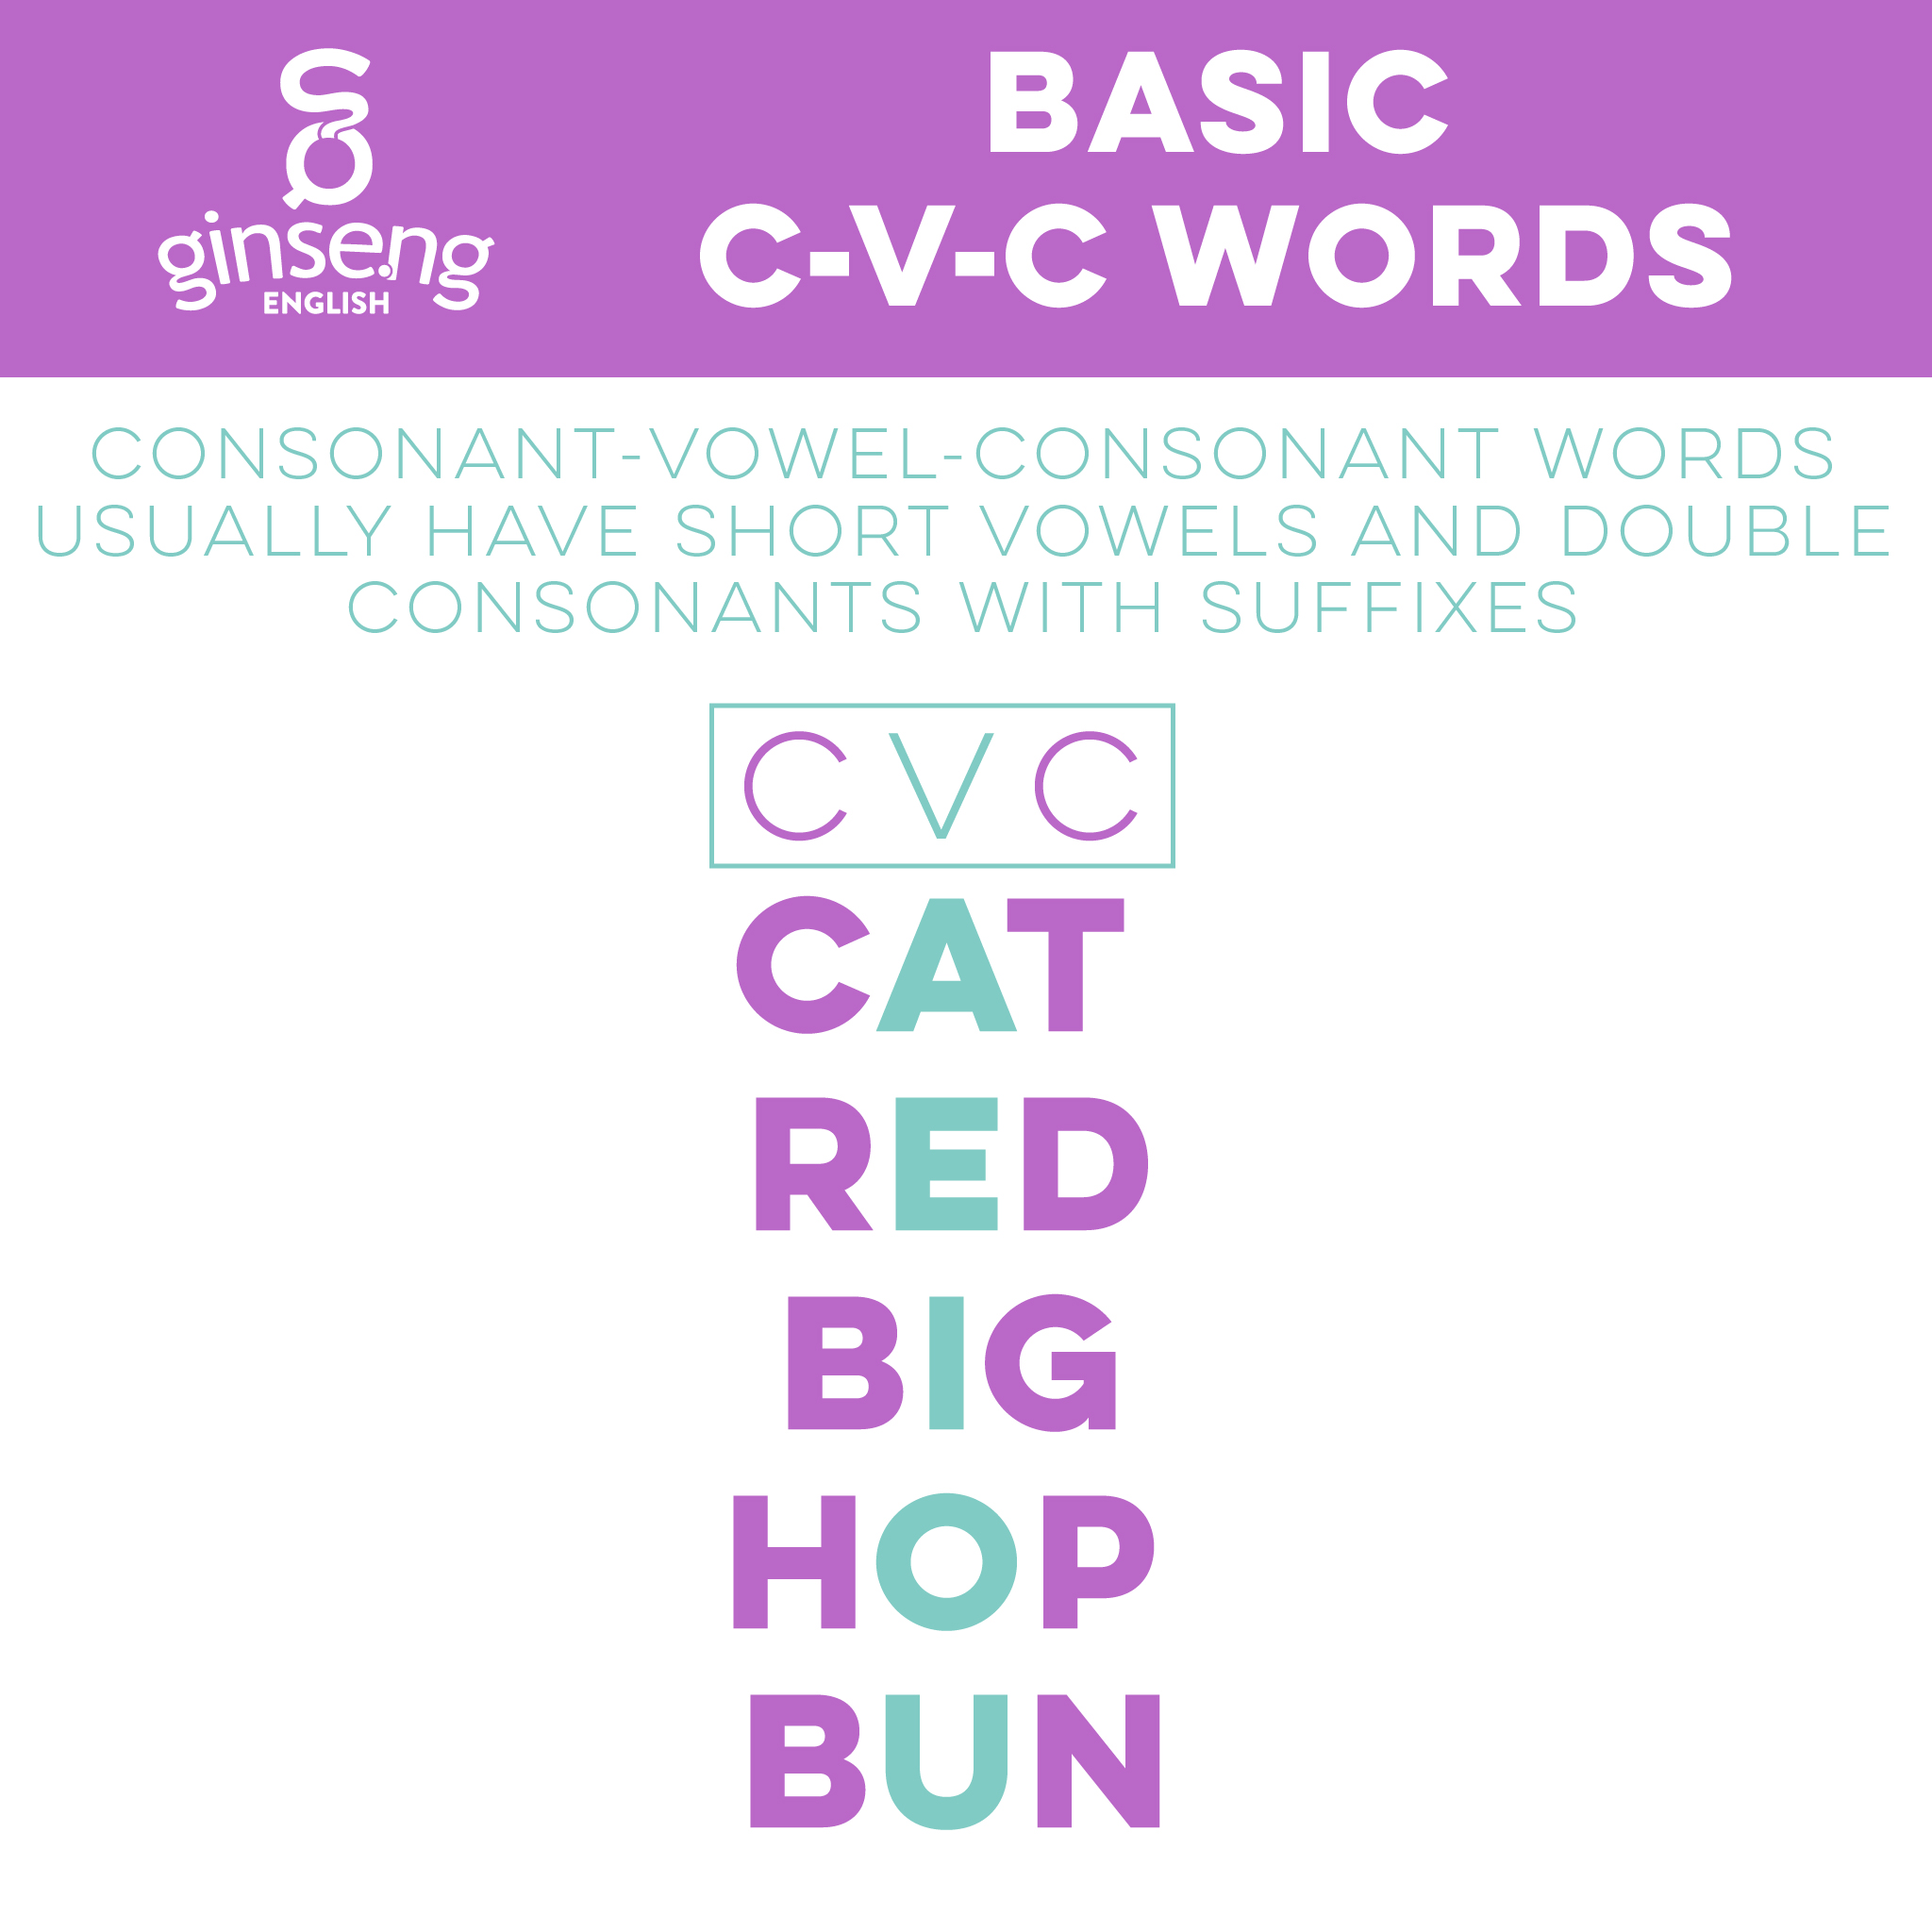 Basic CVC Words